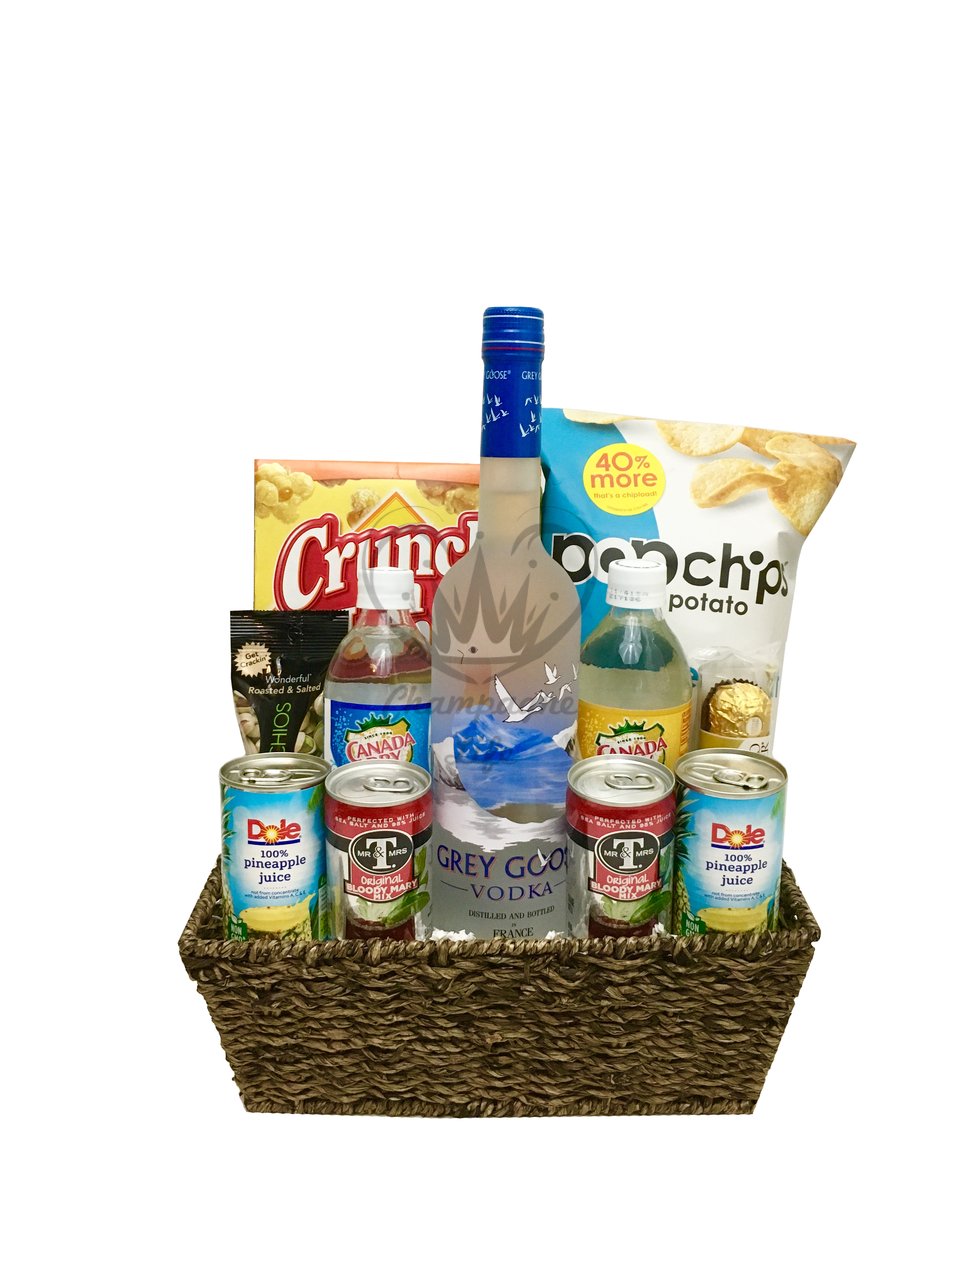 The Grey Goose Gift Basket Is Available For Same Day Delivery In Las Vegas NV Baskets Corporate Gifts And More Buy Today At